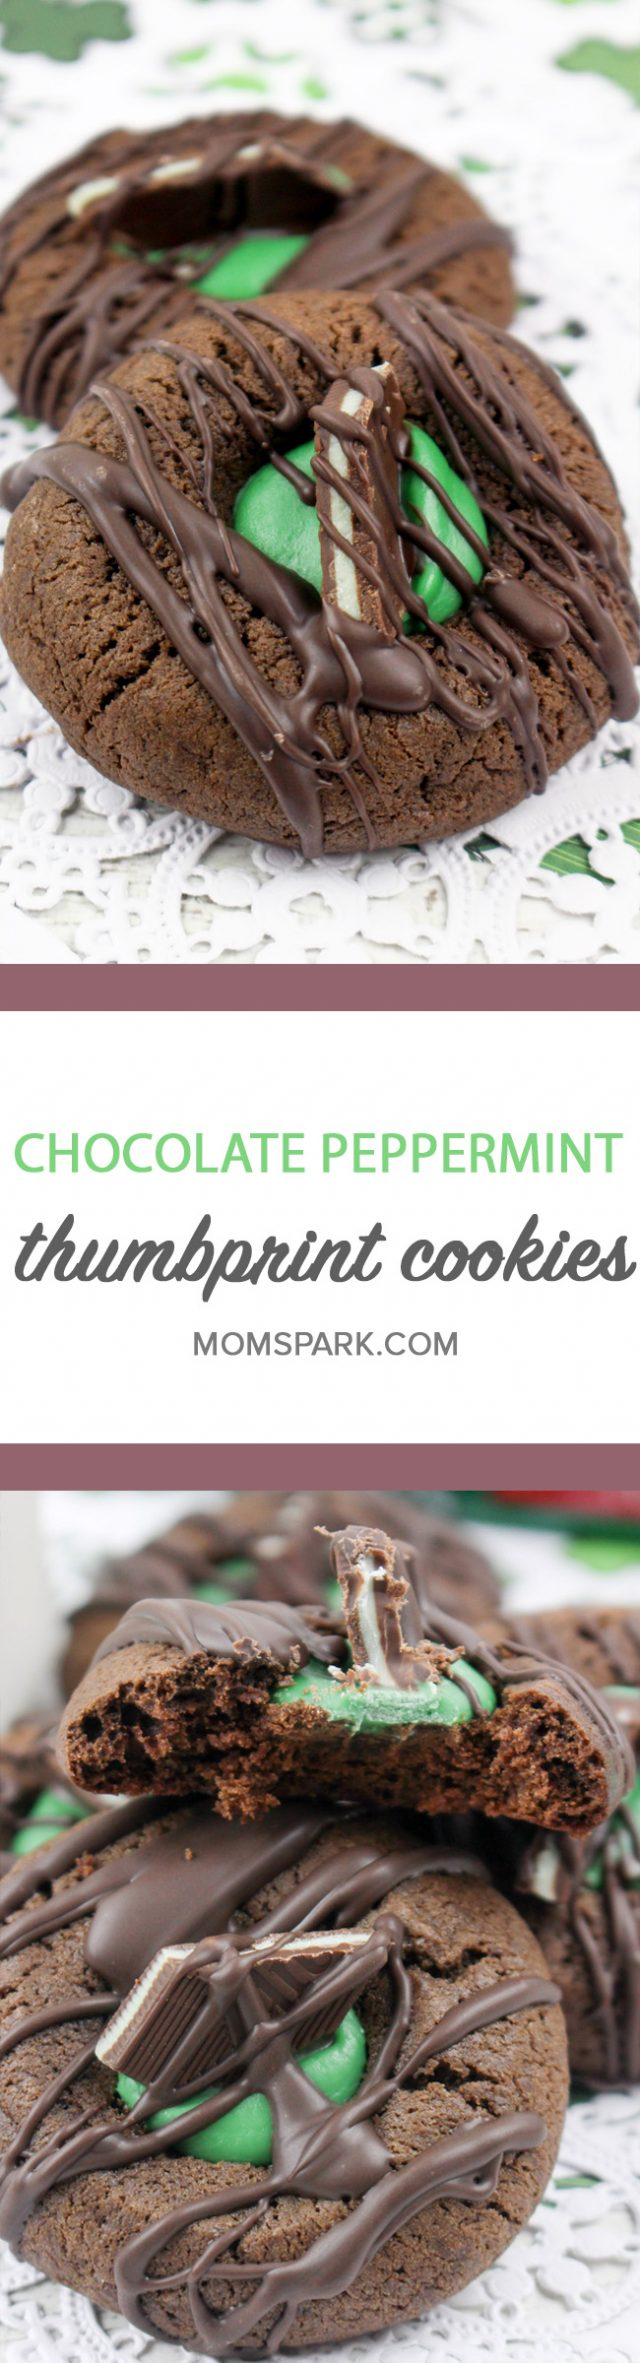 Chocolate Peppermint Thumbprint Cookies Recipe